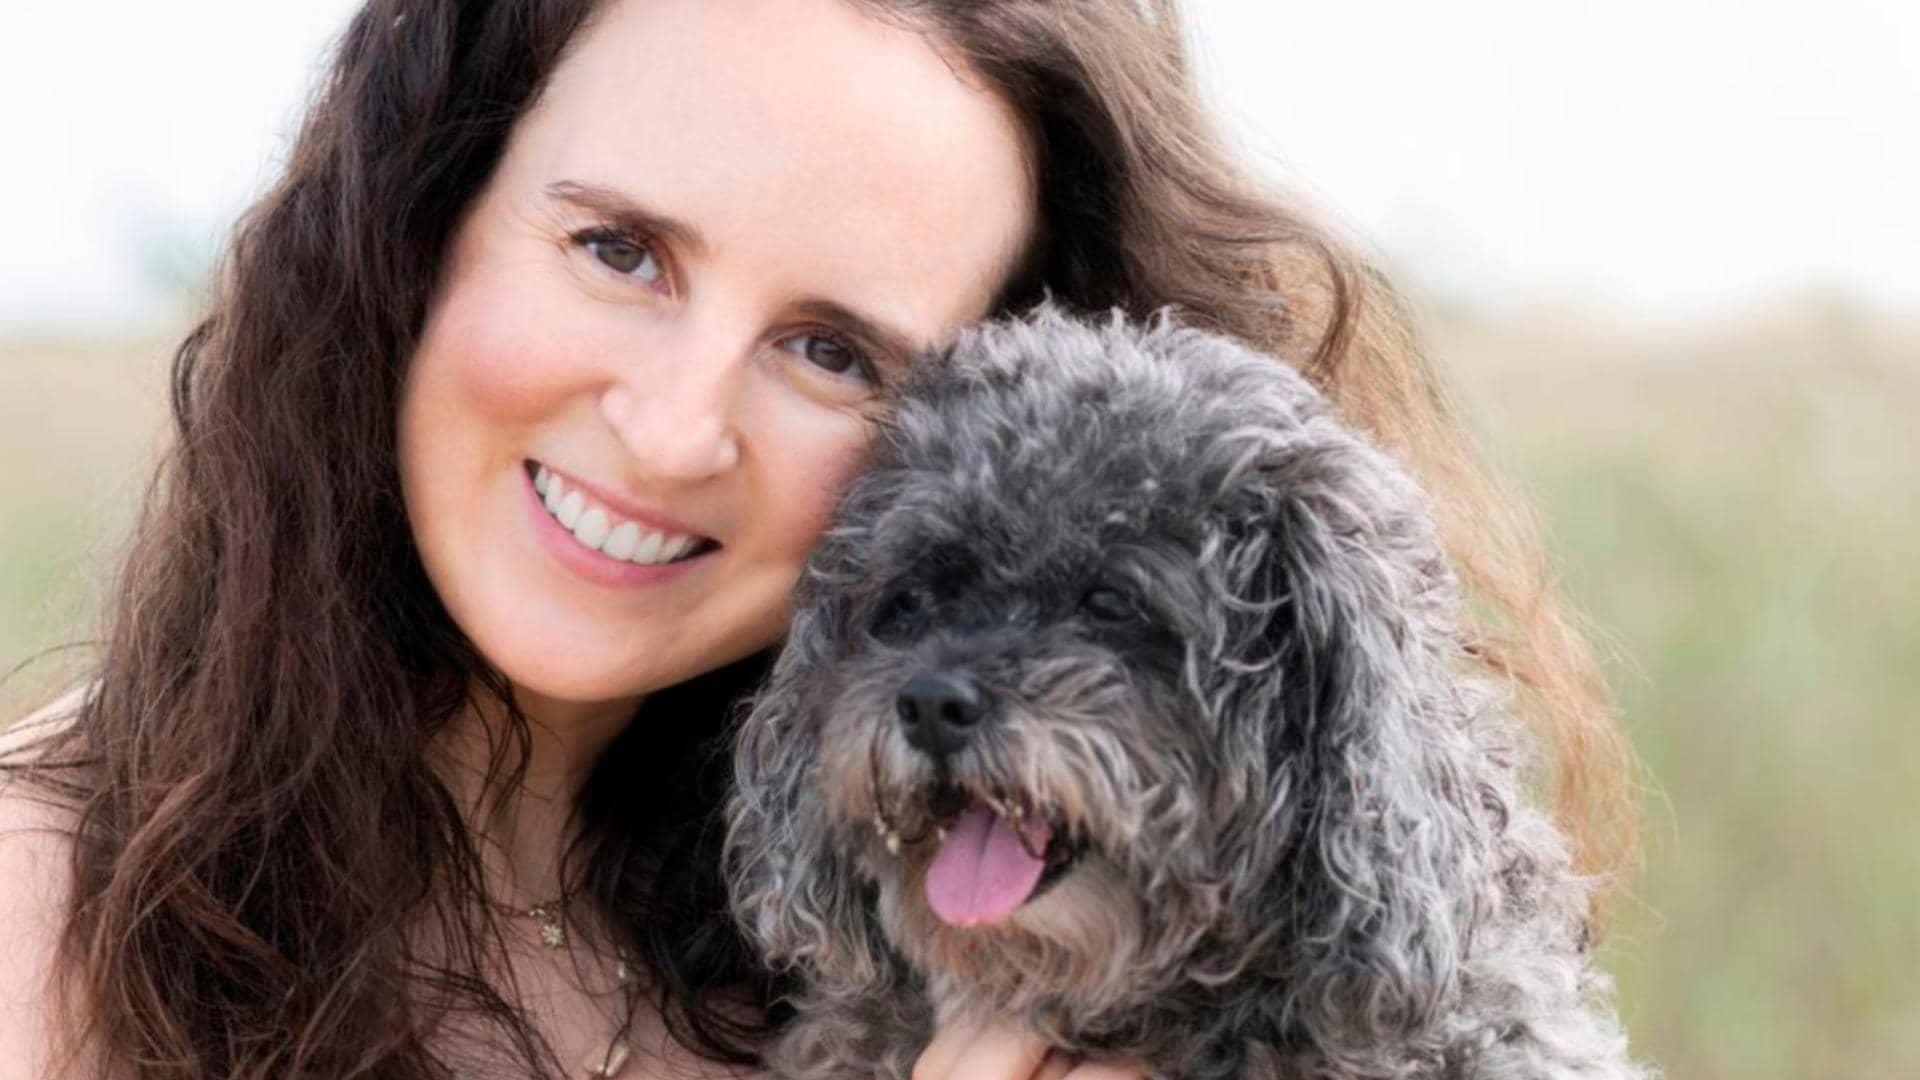 Anya Babbitt is the CEO & Co-Founder of Mella Pet Care, which builds accessible technology and diagnostic products for veterinarians and pet parents.